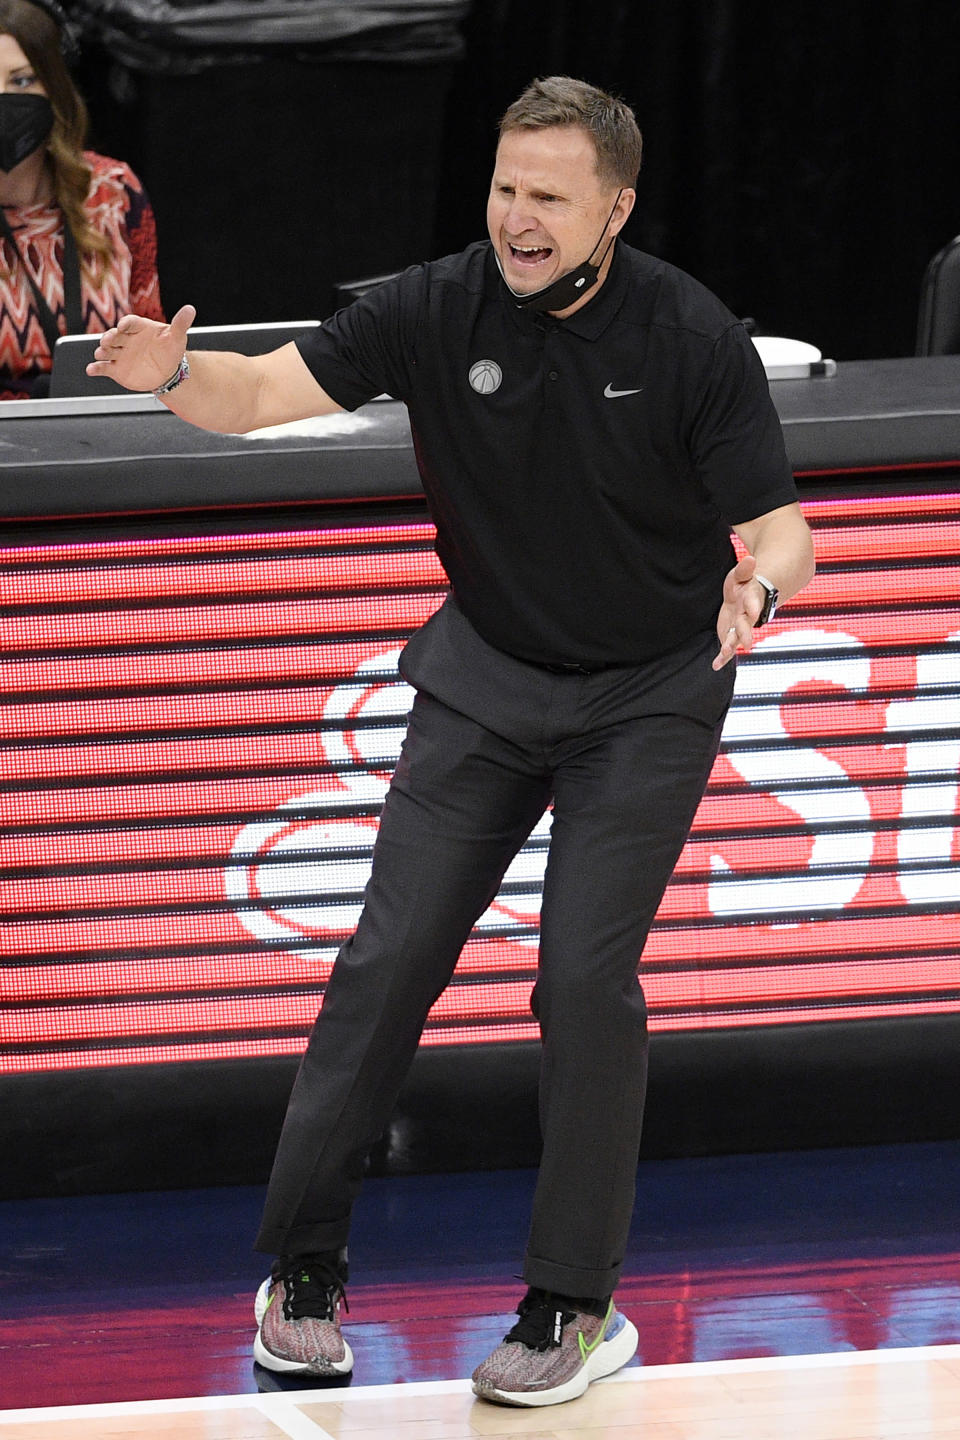 FILE - Washington Wizards coach Scott Brooks reacts during the first half of the team's NBA basketball Eastern Conference play-in game against the Indiana Pacers in Washington, in this Thursday, May 20, 2021, file photo. Scott Brooks is out as coach of the Washington Wizards, said a person with knowledge of the situation. The person spoke to The Associated Press Wednesday, June 16, 2021, on condition of anonymity because the team hadn't publicly announced the decision. (AP Photo/Nick Wass, File)